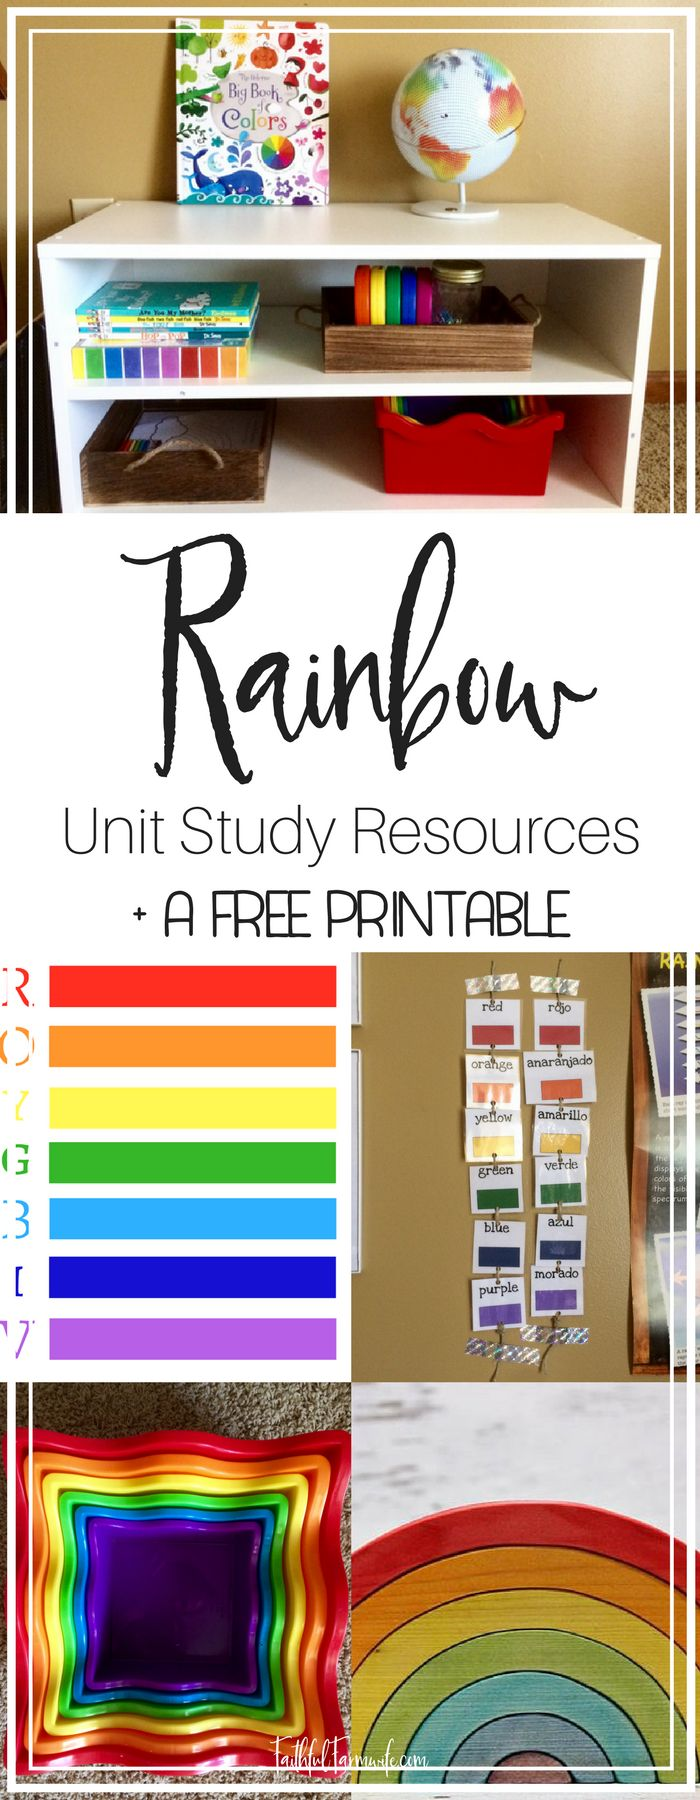 A Rainbow Unit Study is perfect for the springtime! Check out these awesome rainbow resources that you can use!